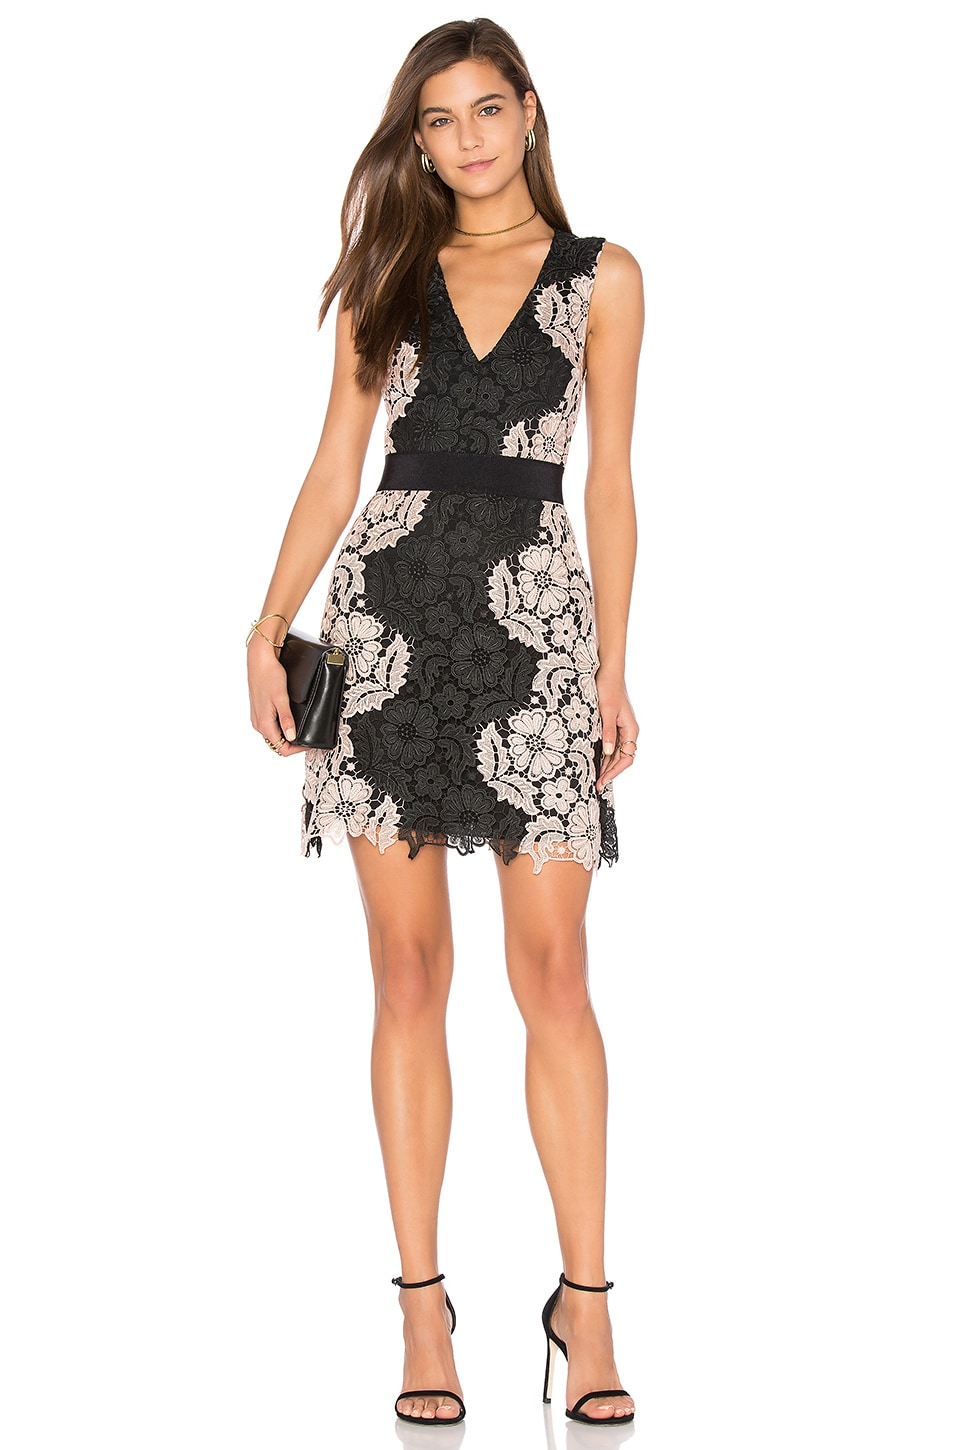 Alice + Olivia Patrice A Line Dress in Black & Nude Pink